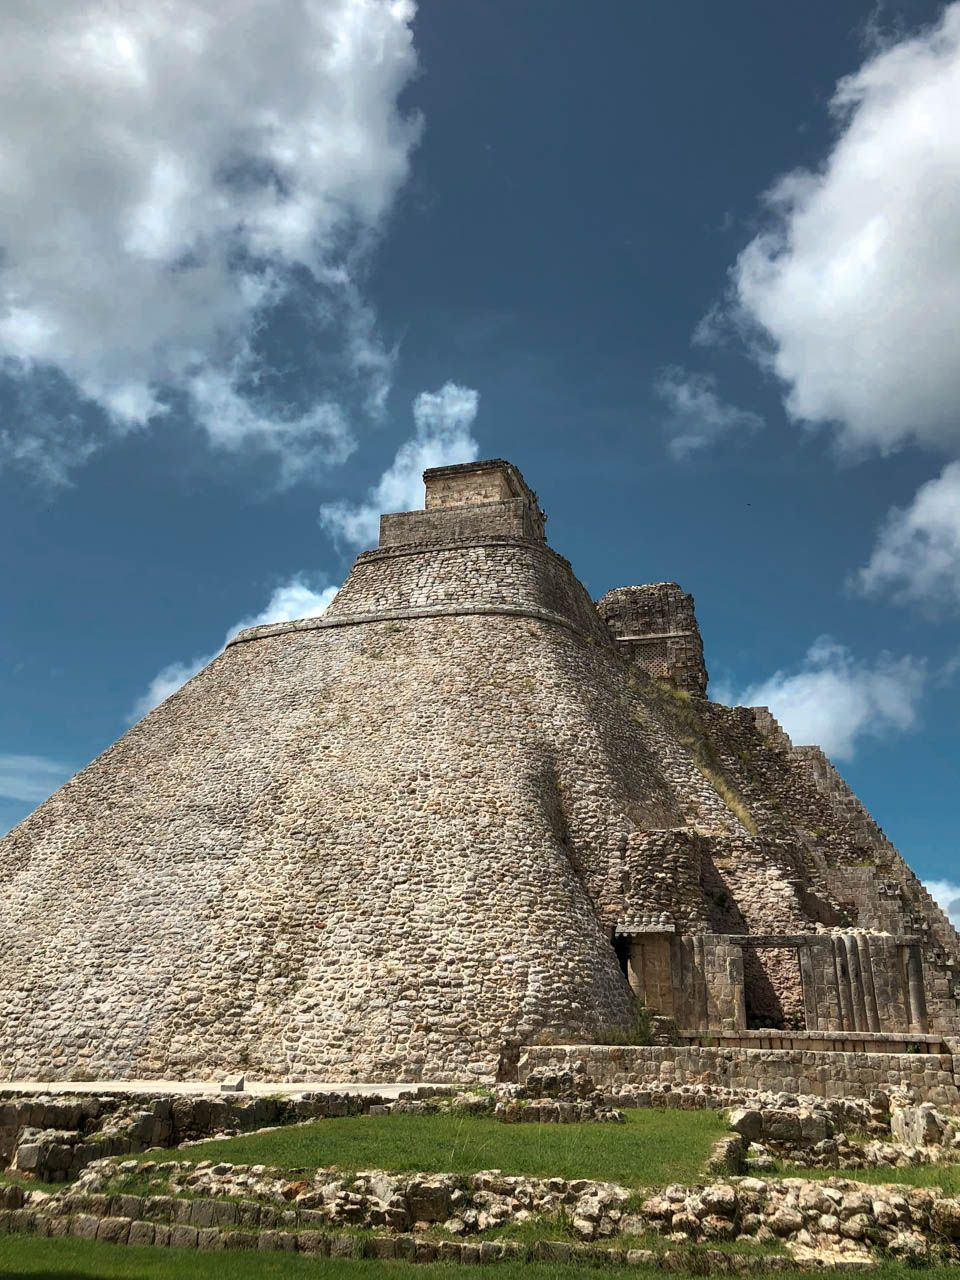 The Temple of the Magician at Uxmal.